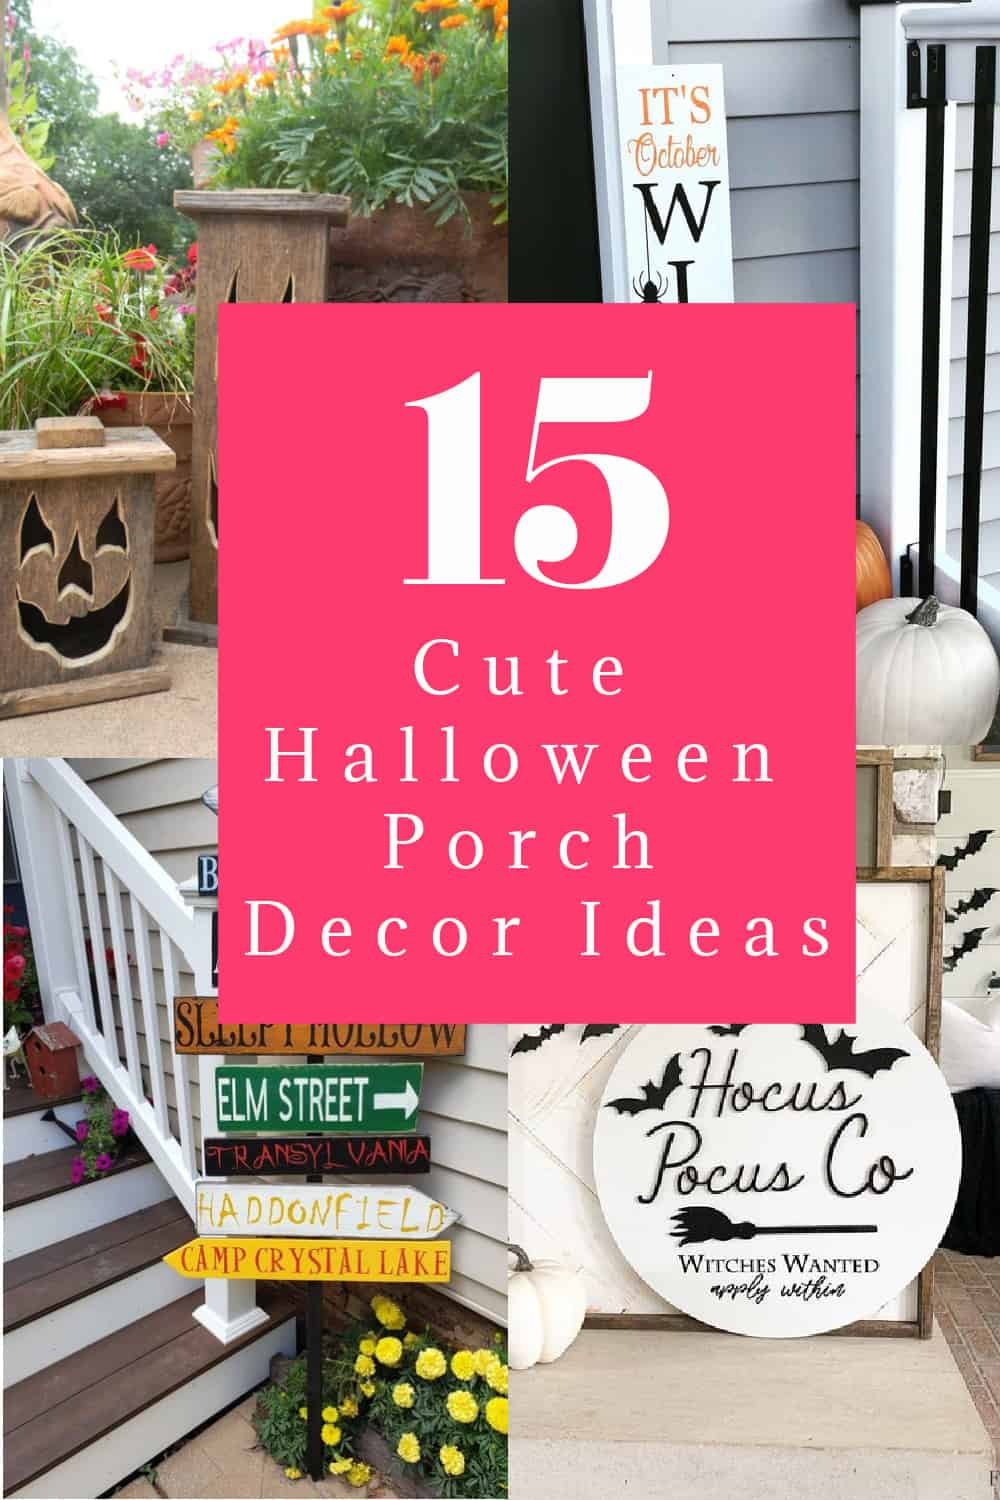 These cute Halloween porch decorations help make the year extra special, especially for kids who can't trick or treat. Check them out!